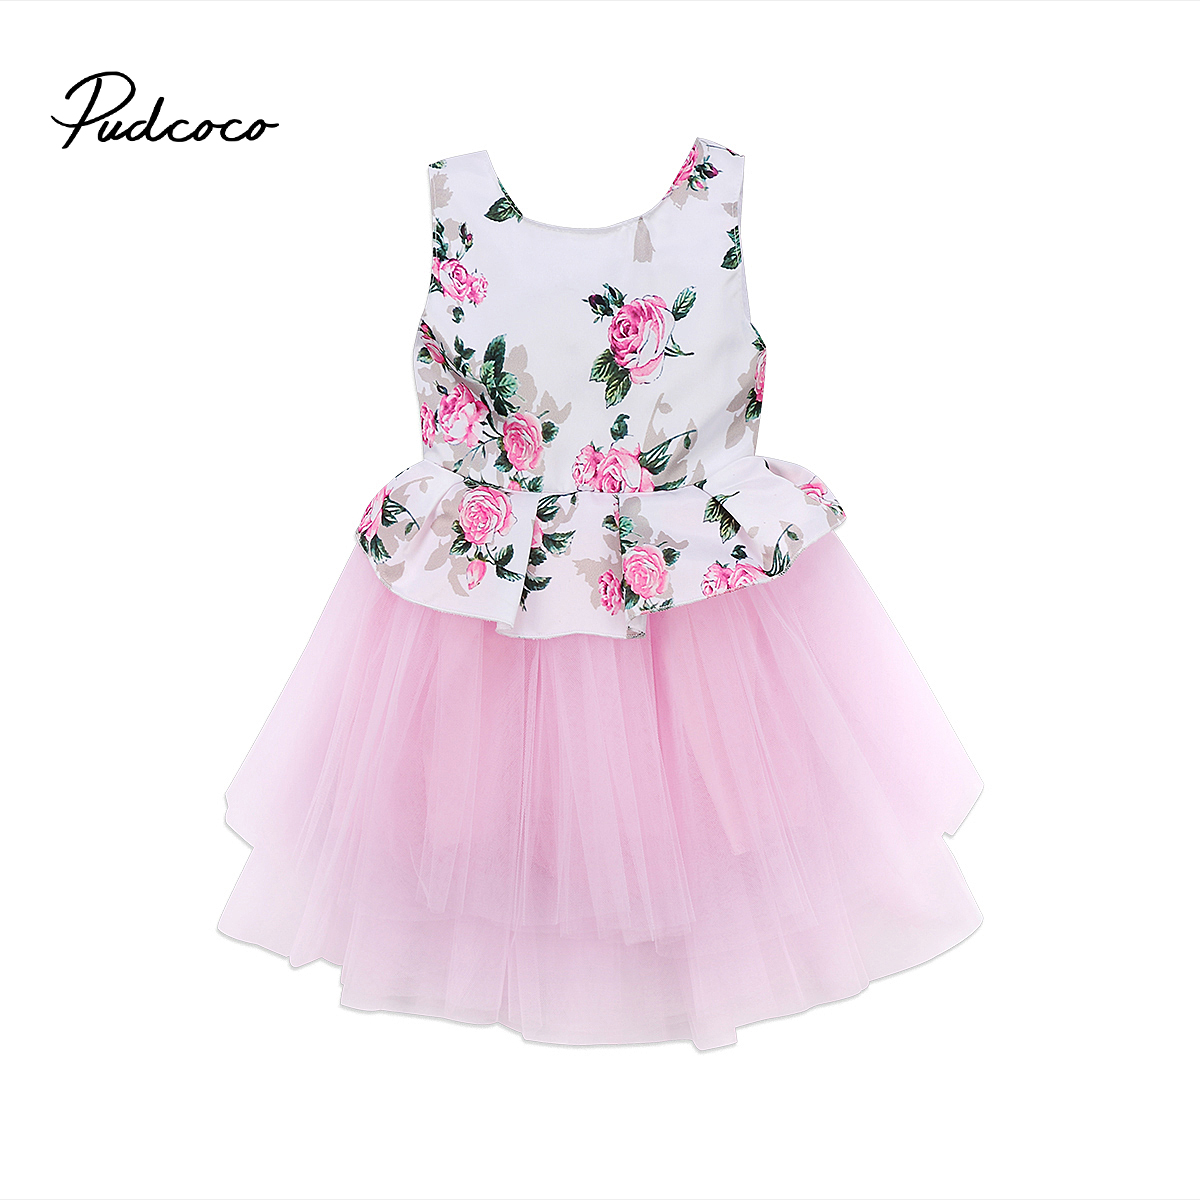 Princess Newborn Baby Girls Floral Pink Tutu Tulle Party Dress Sleeveless Flower Print Ball Gown Dresses Kids Clothes Outfits